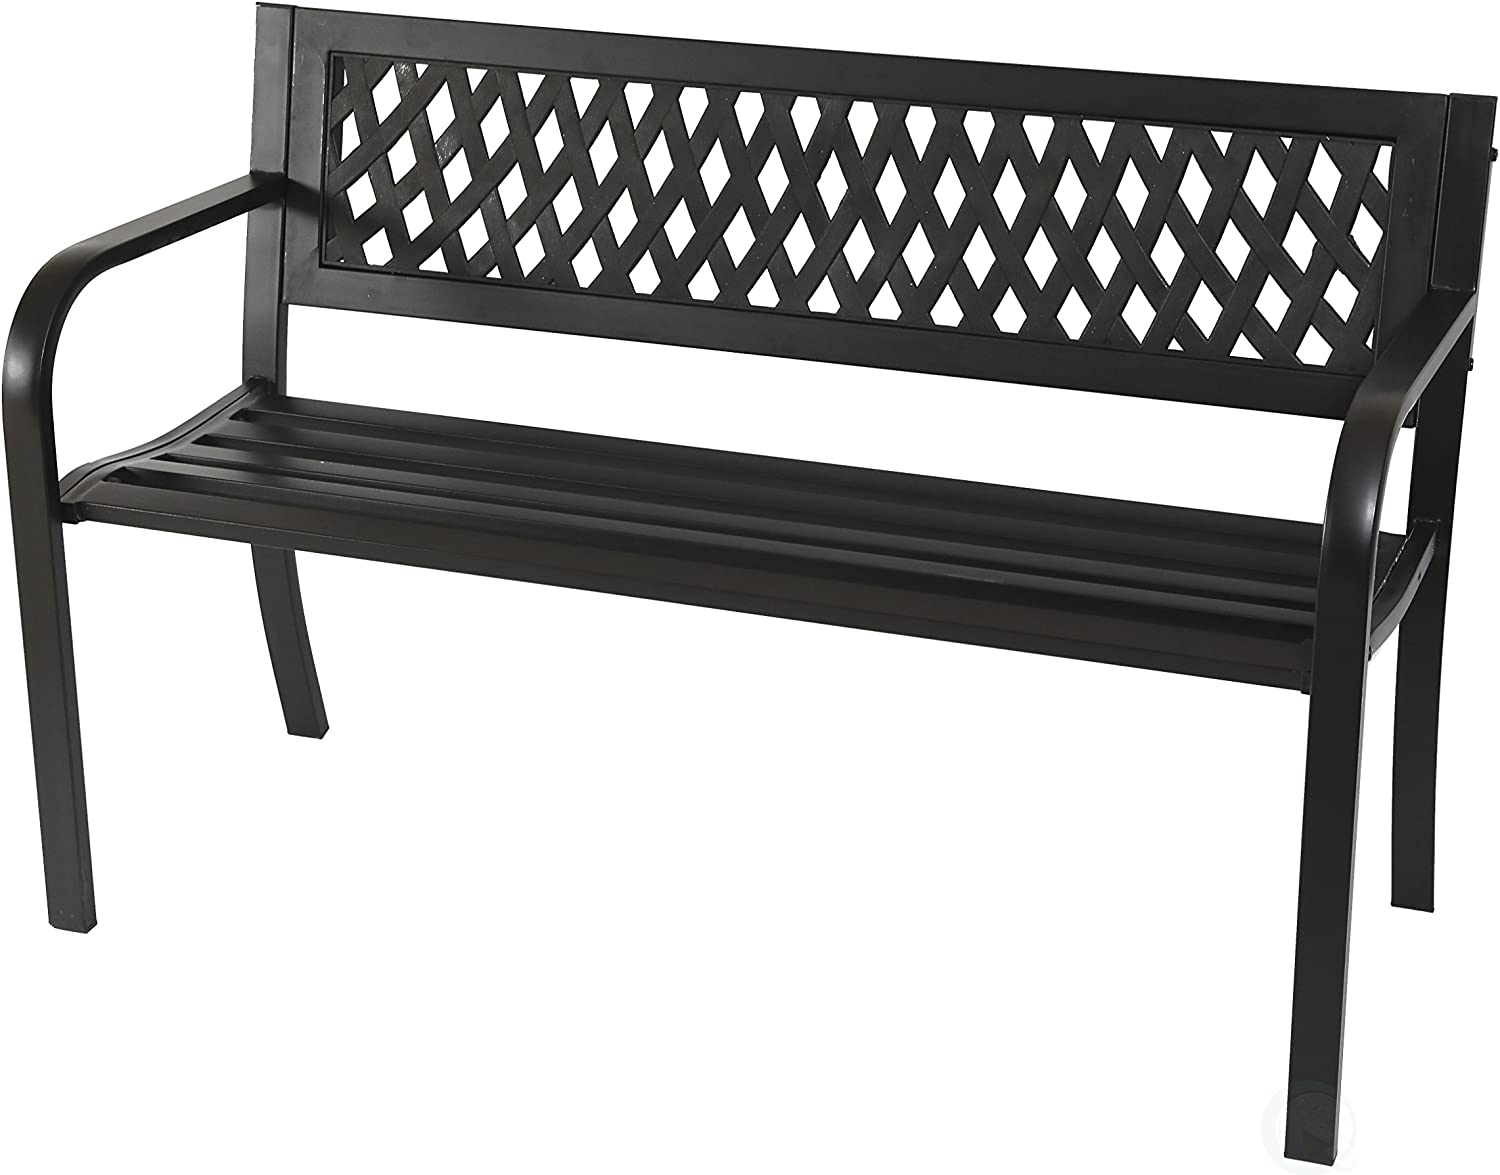 "Gardenised Patio Steel 47"" Park Bench For Garden Weather Resistant"